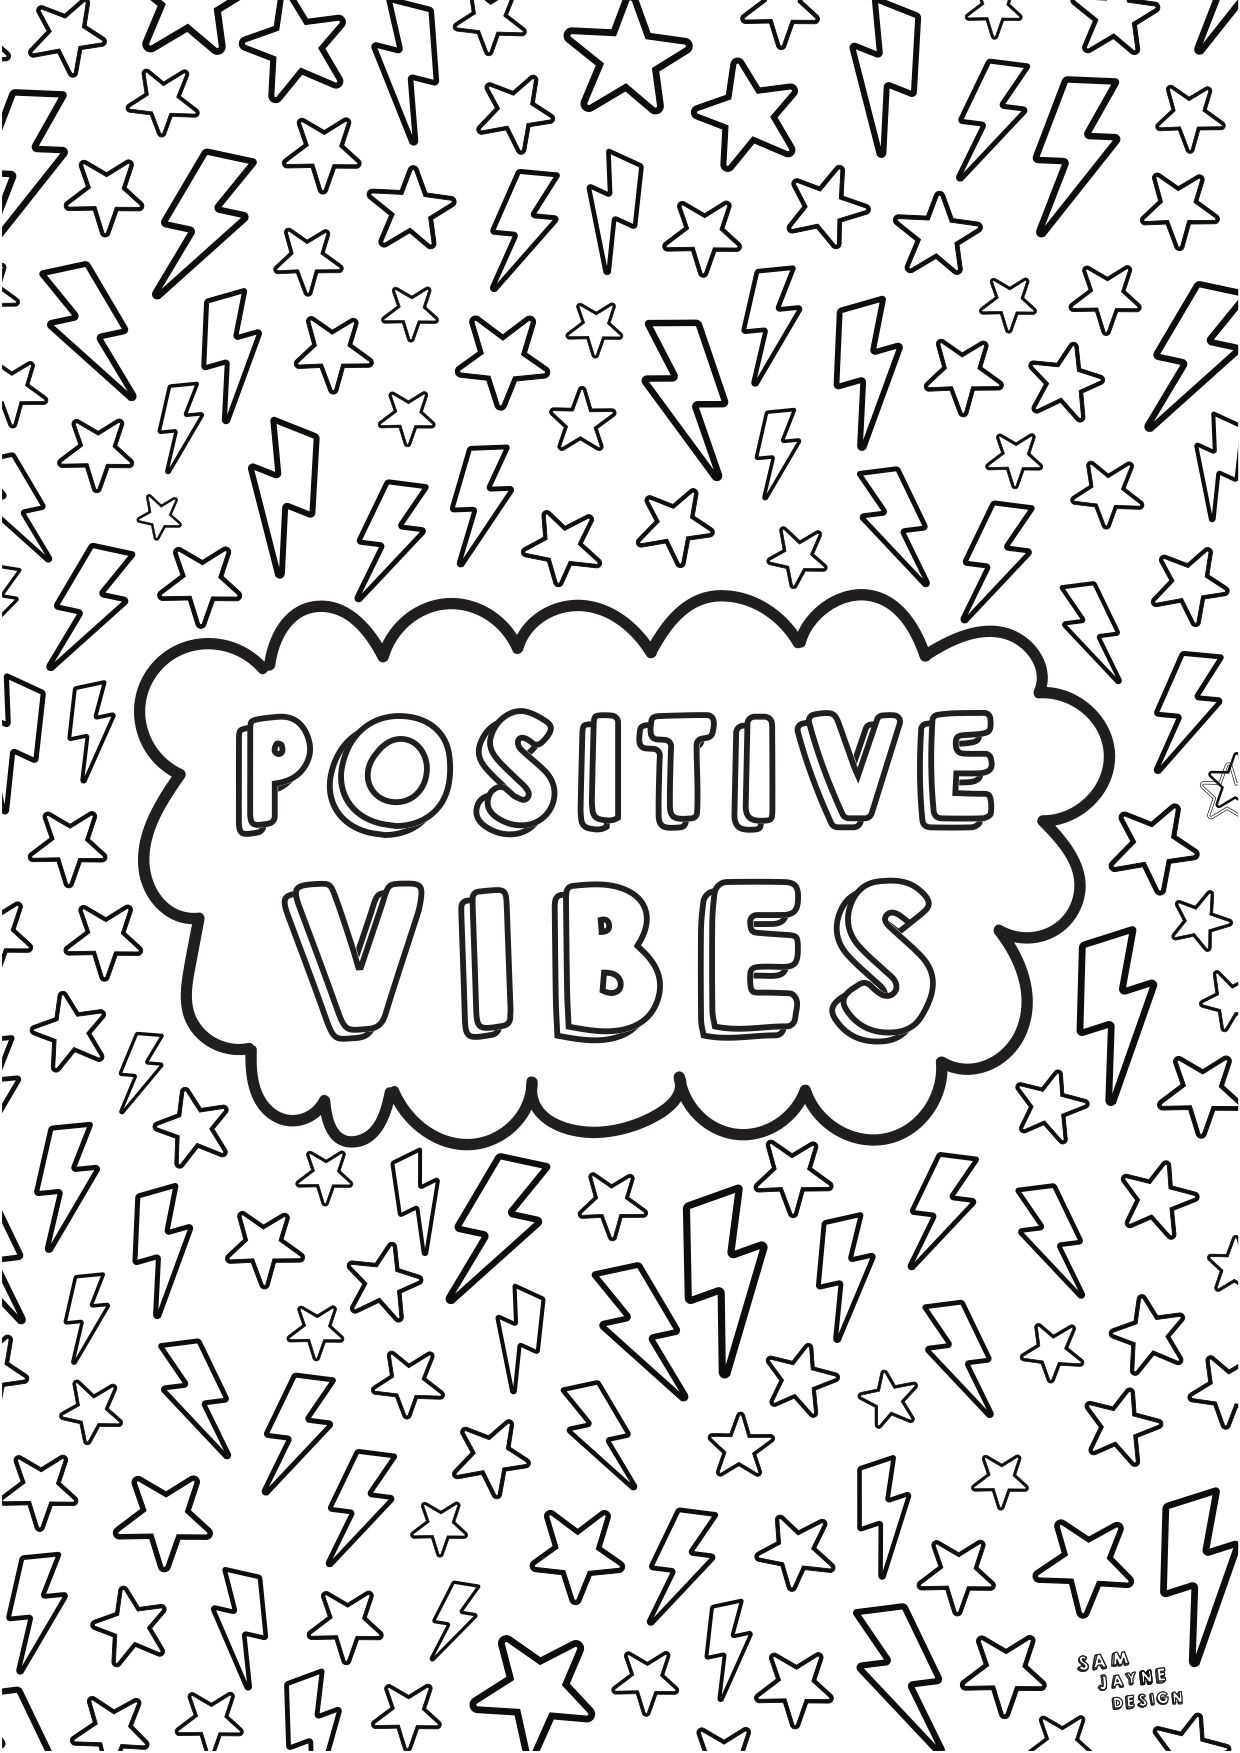 Positive Vibes Colouring Page Quote Coloring Pages Tumblr Coloring Pages Kids Printable Coloring Pages [ 1753 x 1240 Pixel ]